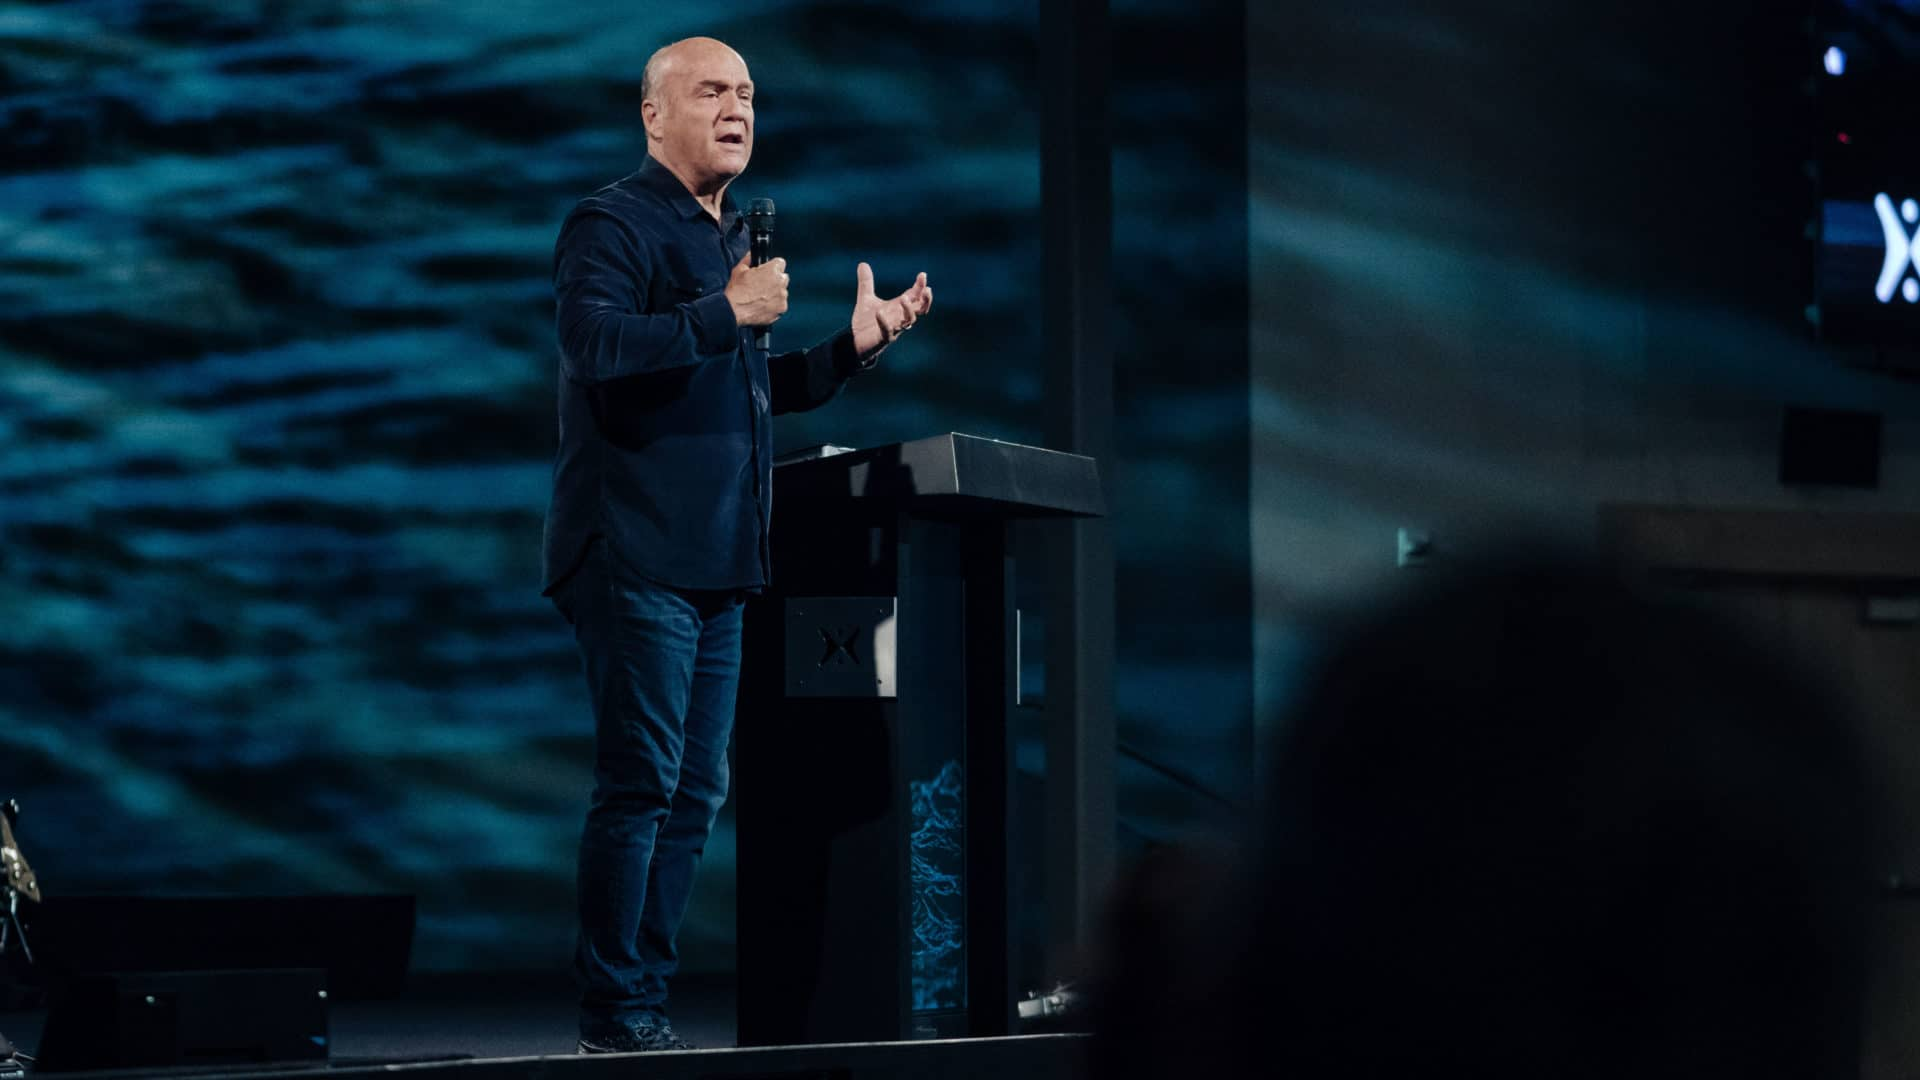 """Pastor Greg Laurie shares a message from 1 Peter 5 and Philippians 4 titled """"God's Answer to Fear, Worry, and Anxiety, Part 2"""" in our Sunday Morning"""" series at Harvest Christian Fellowship."""